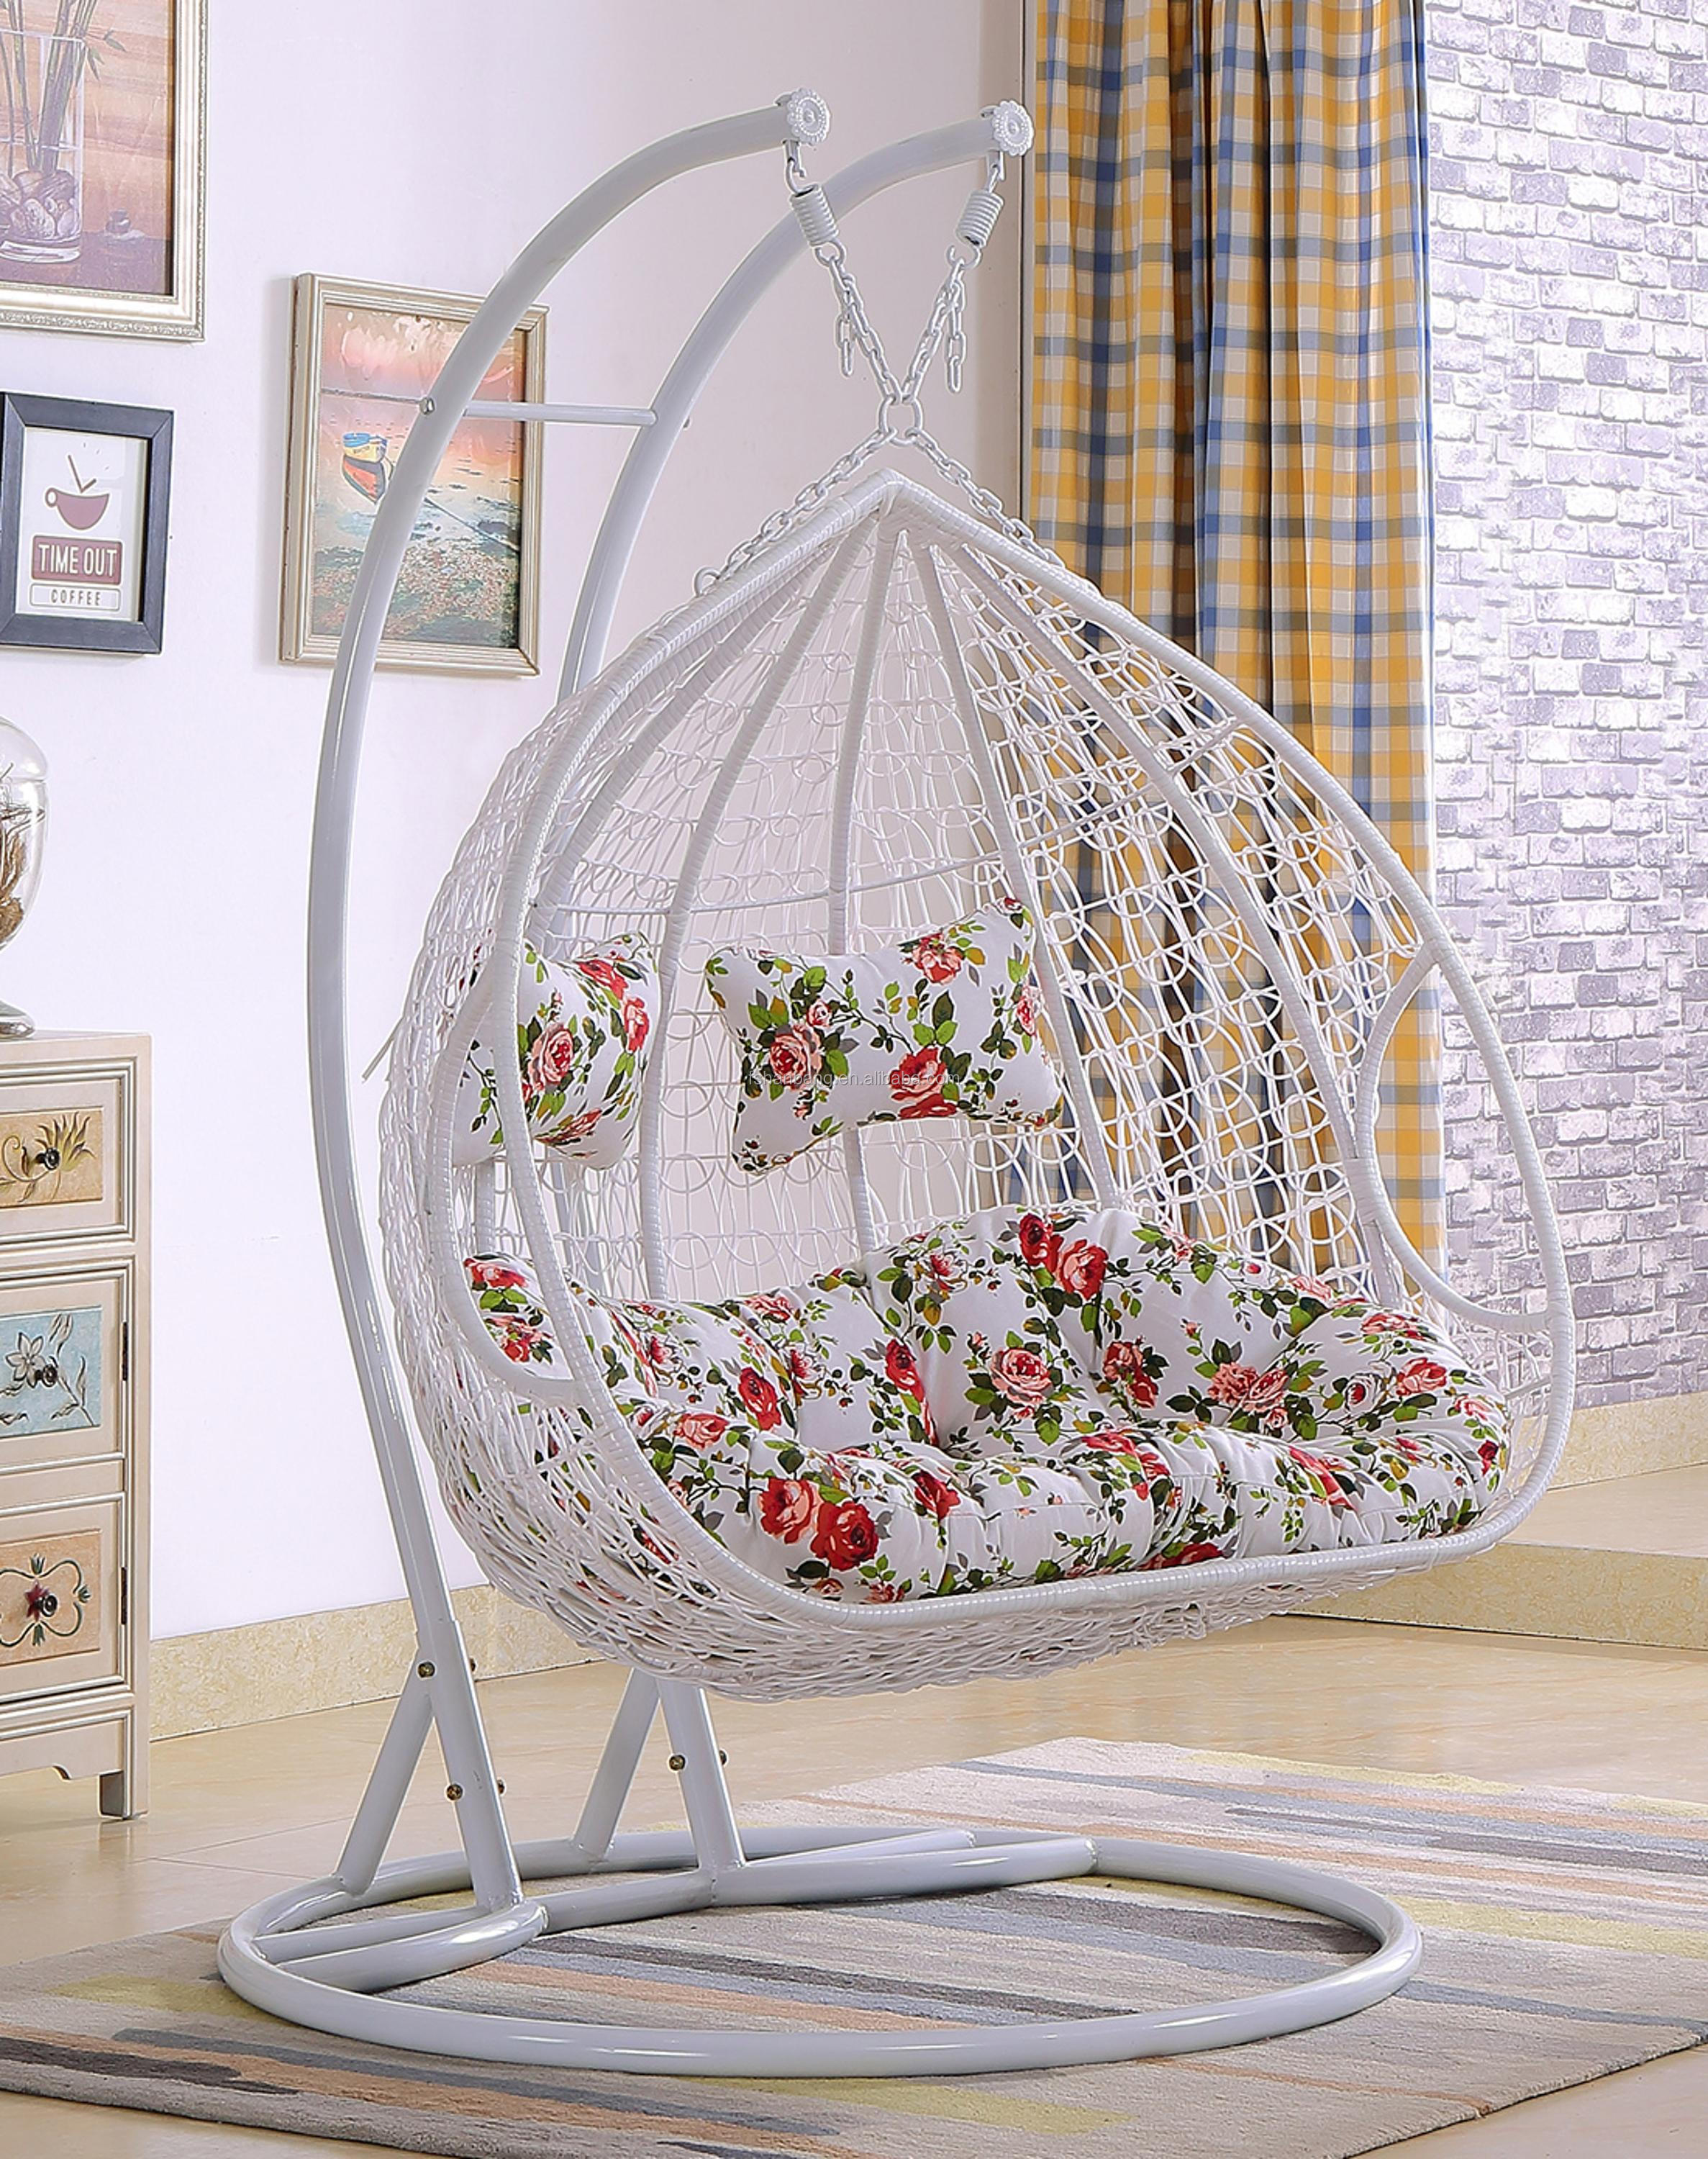 Luxury Outdoor 2 Person Garden Patio Swing Hanging Chair View Hanging Chair Love Rattan Product Details From Foshan Hanbang Furniture Co Ltd On Alibaba Com